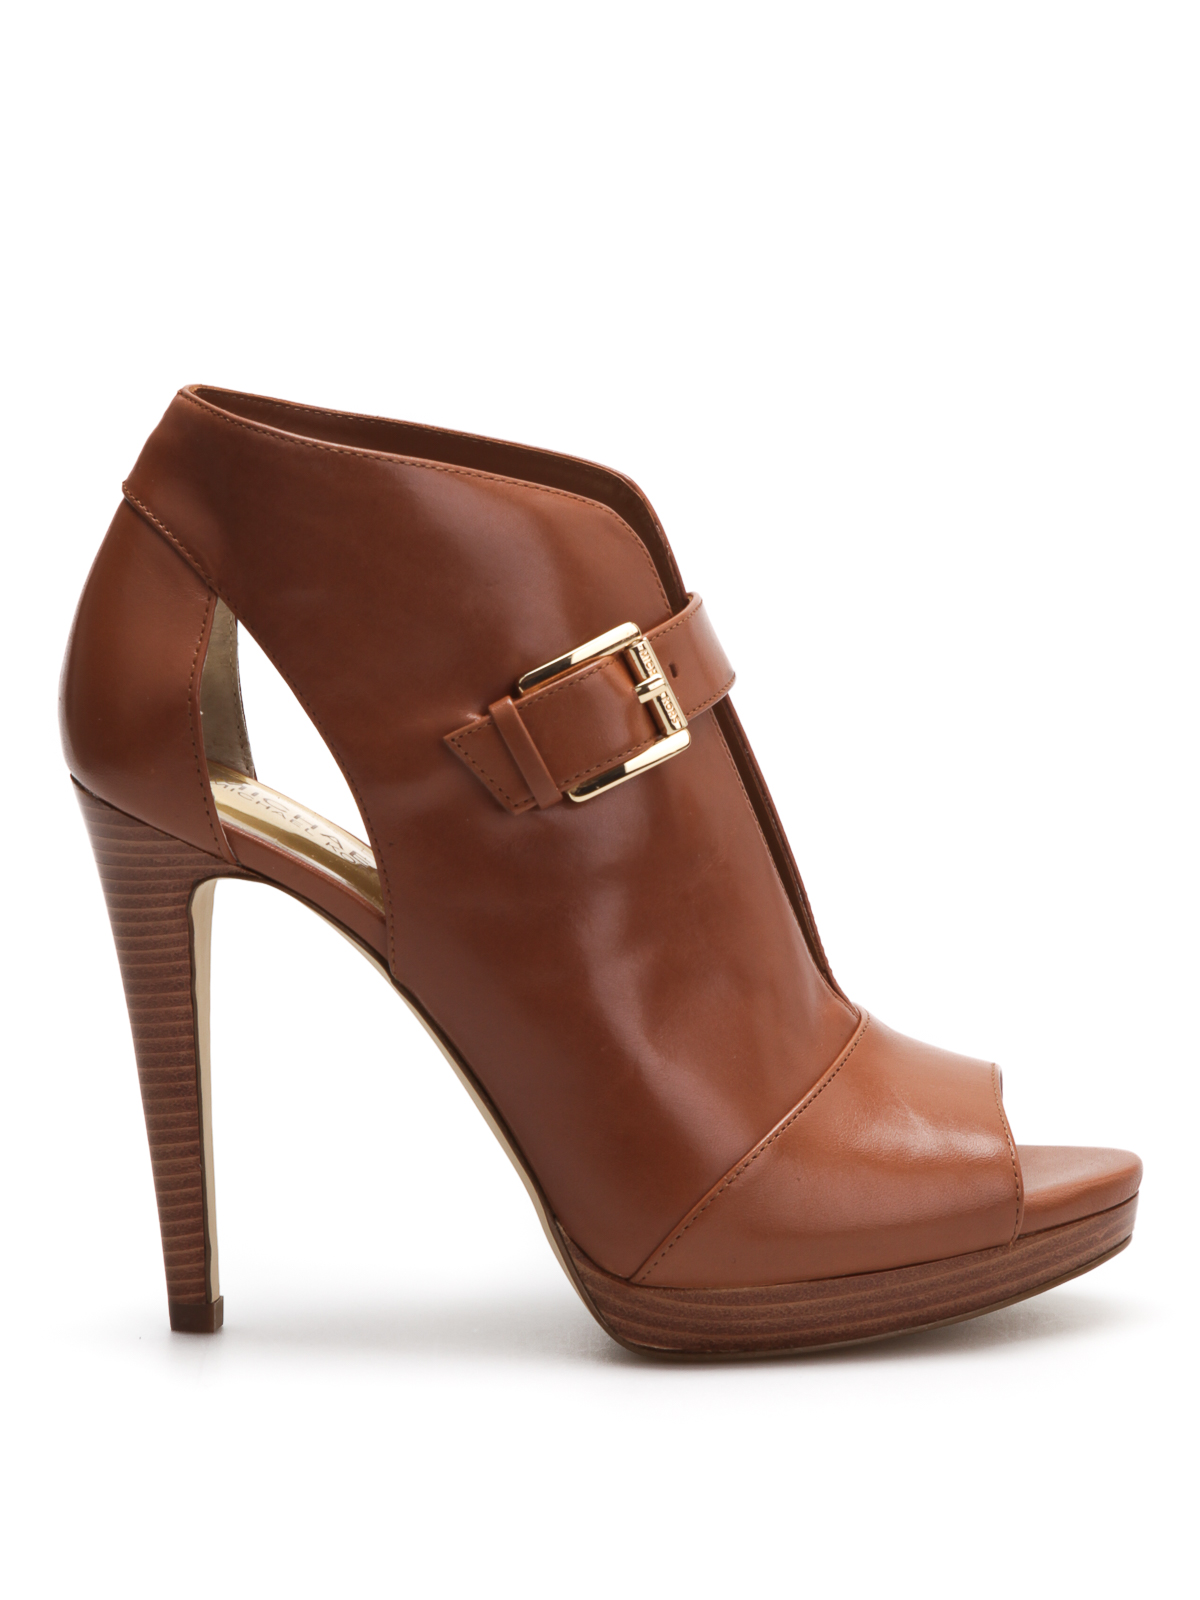 Isabella Leather Pump By Michael Kors Ankle Boots Ikrix